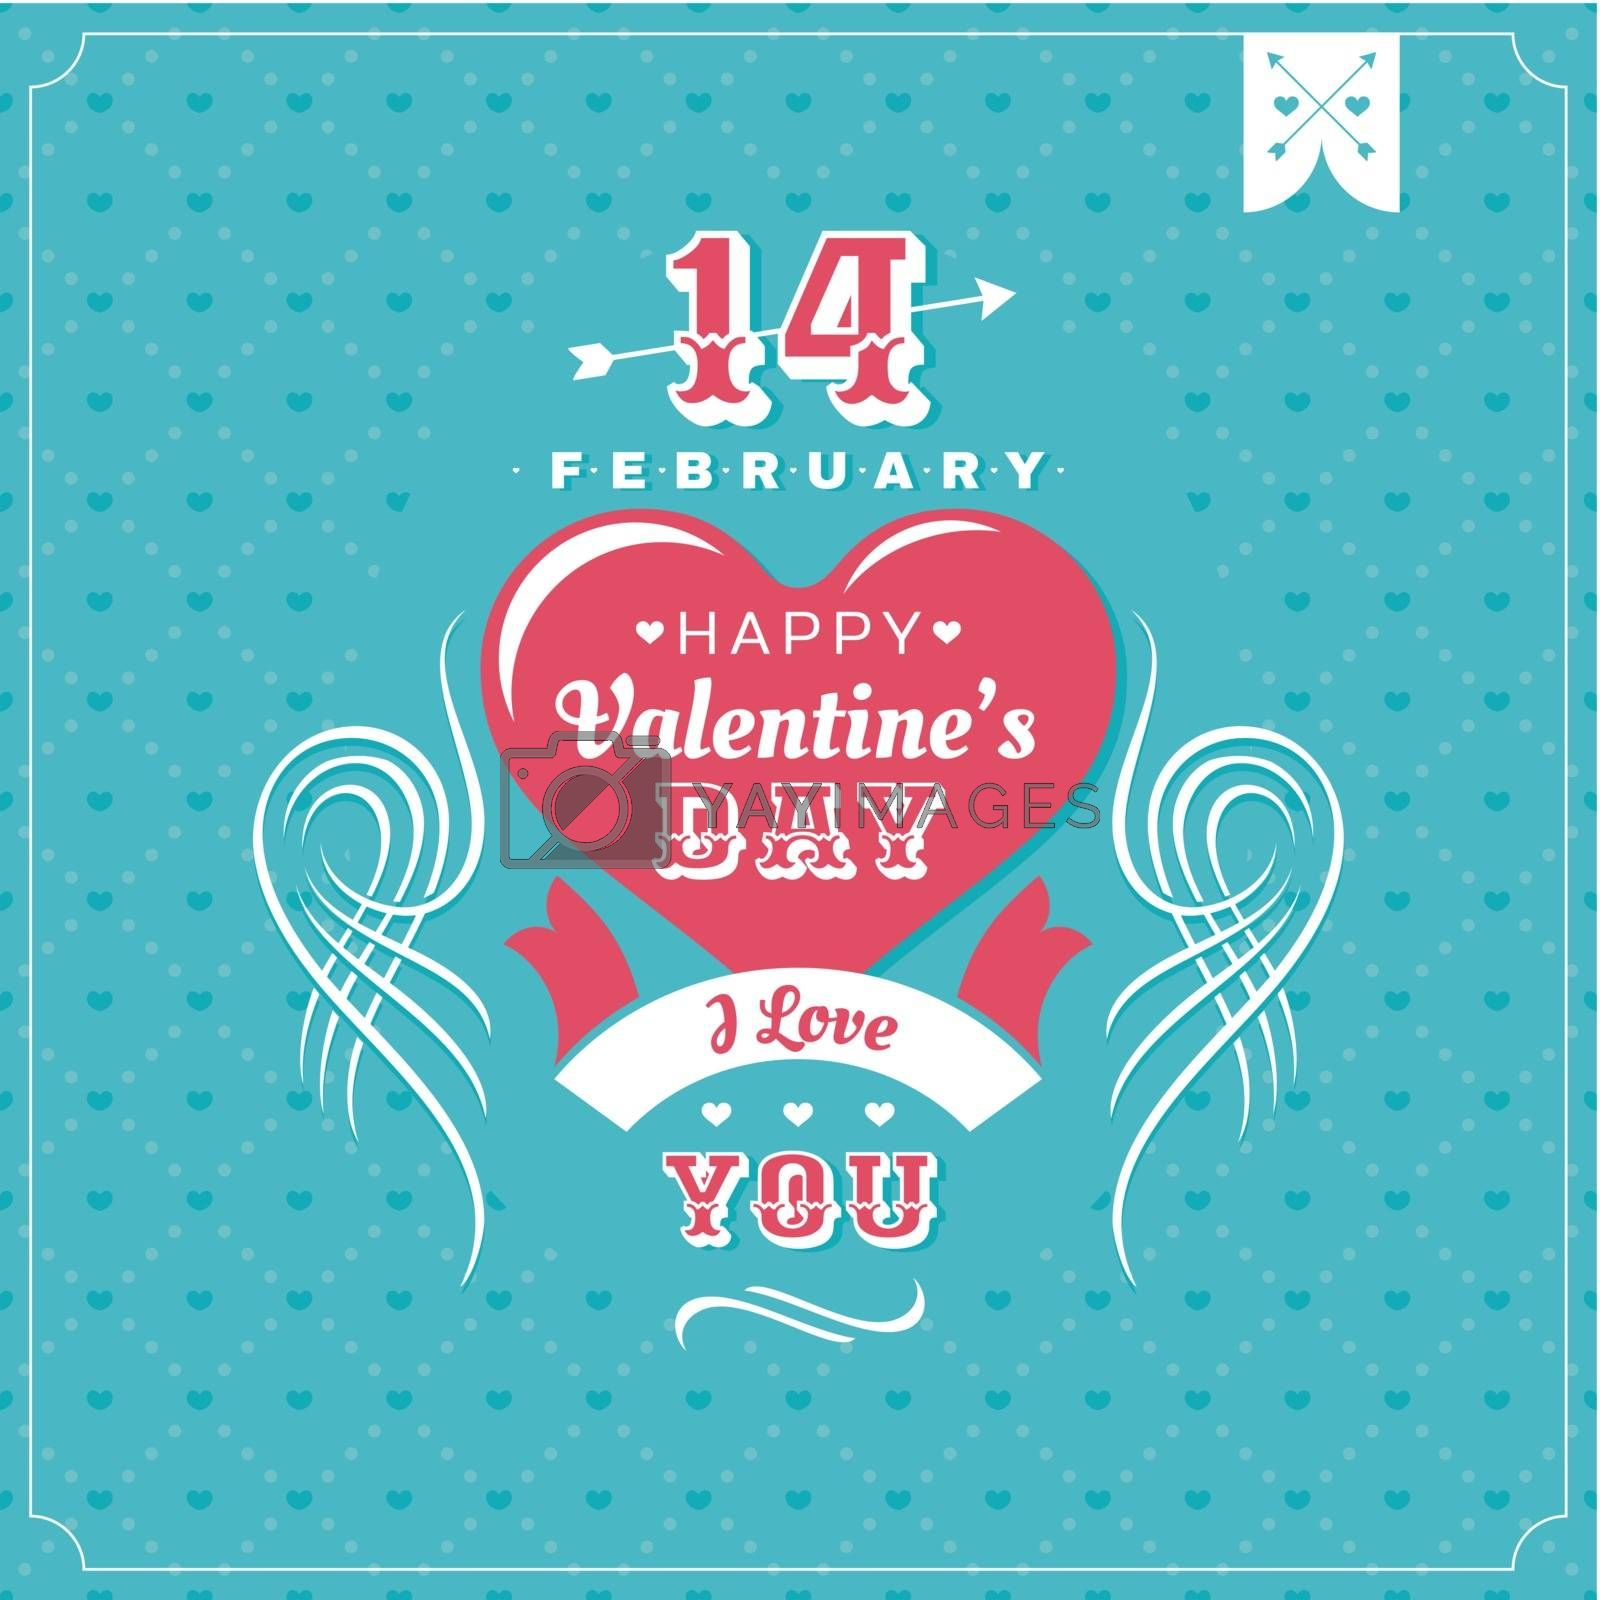 Valentines Day card vector illustration